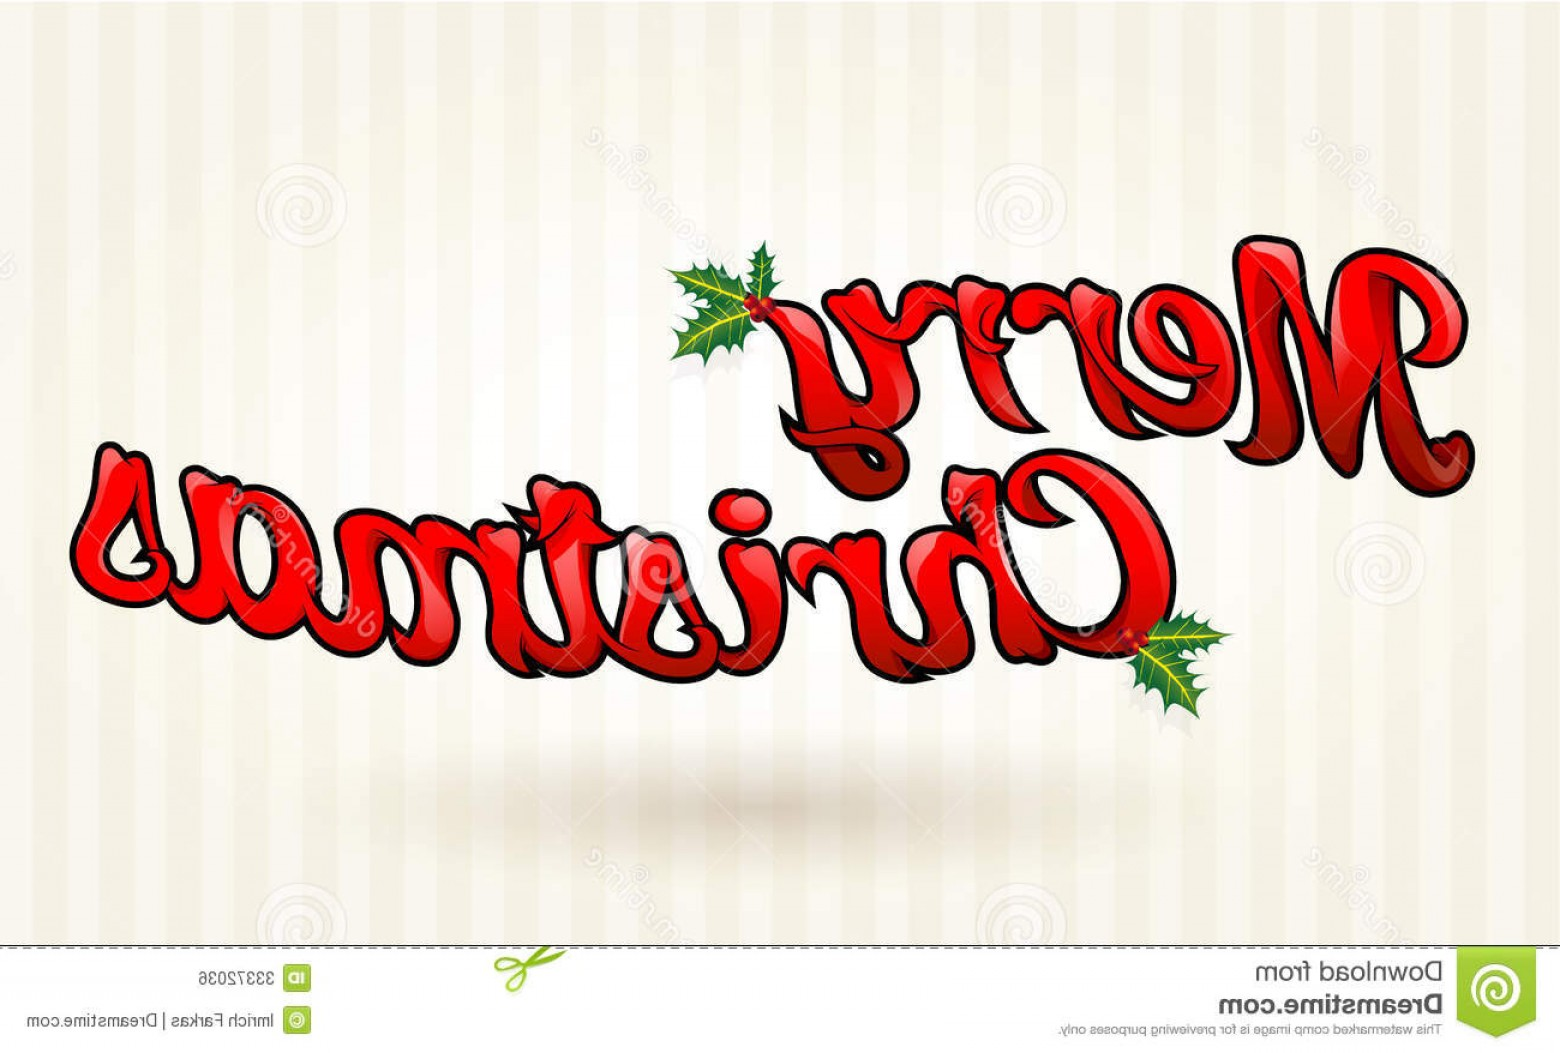 Merry Christmas Vector Graphic: Royalty Free Stock Image Merry Christmas Text Worked Out To Details Vector Art Image